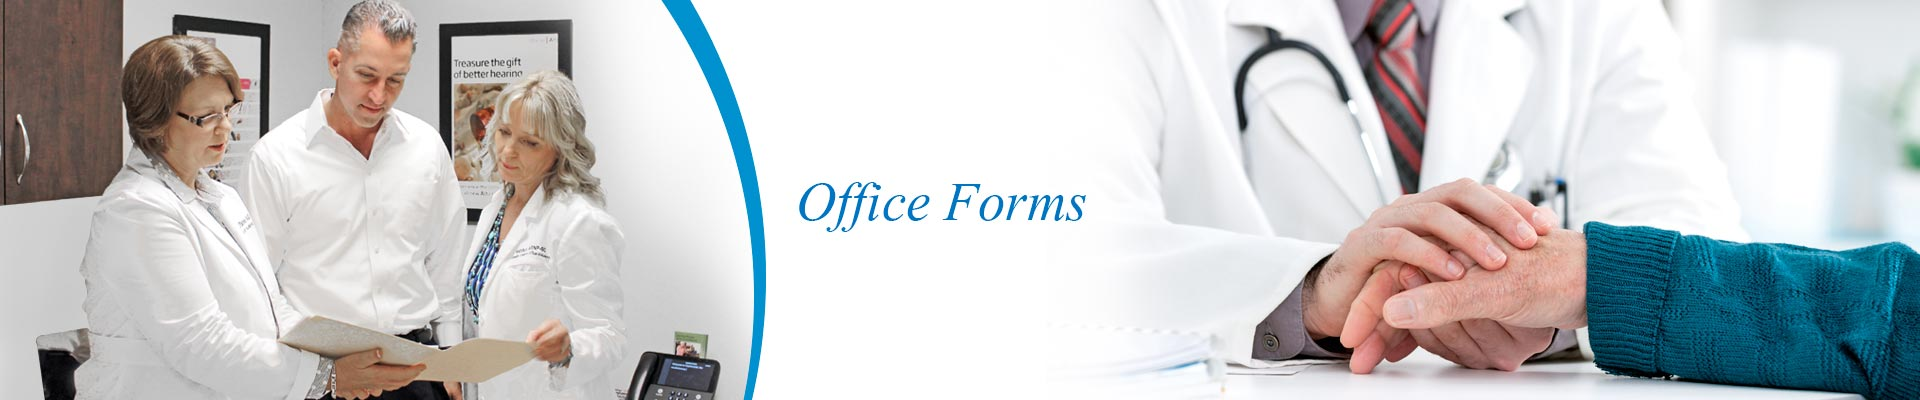 Office forms - Associated Coastal ENT